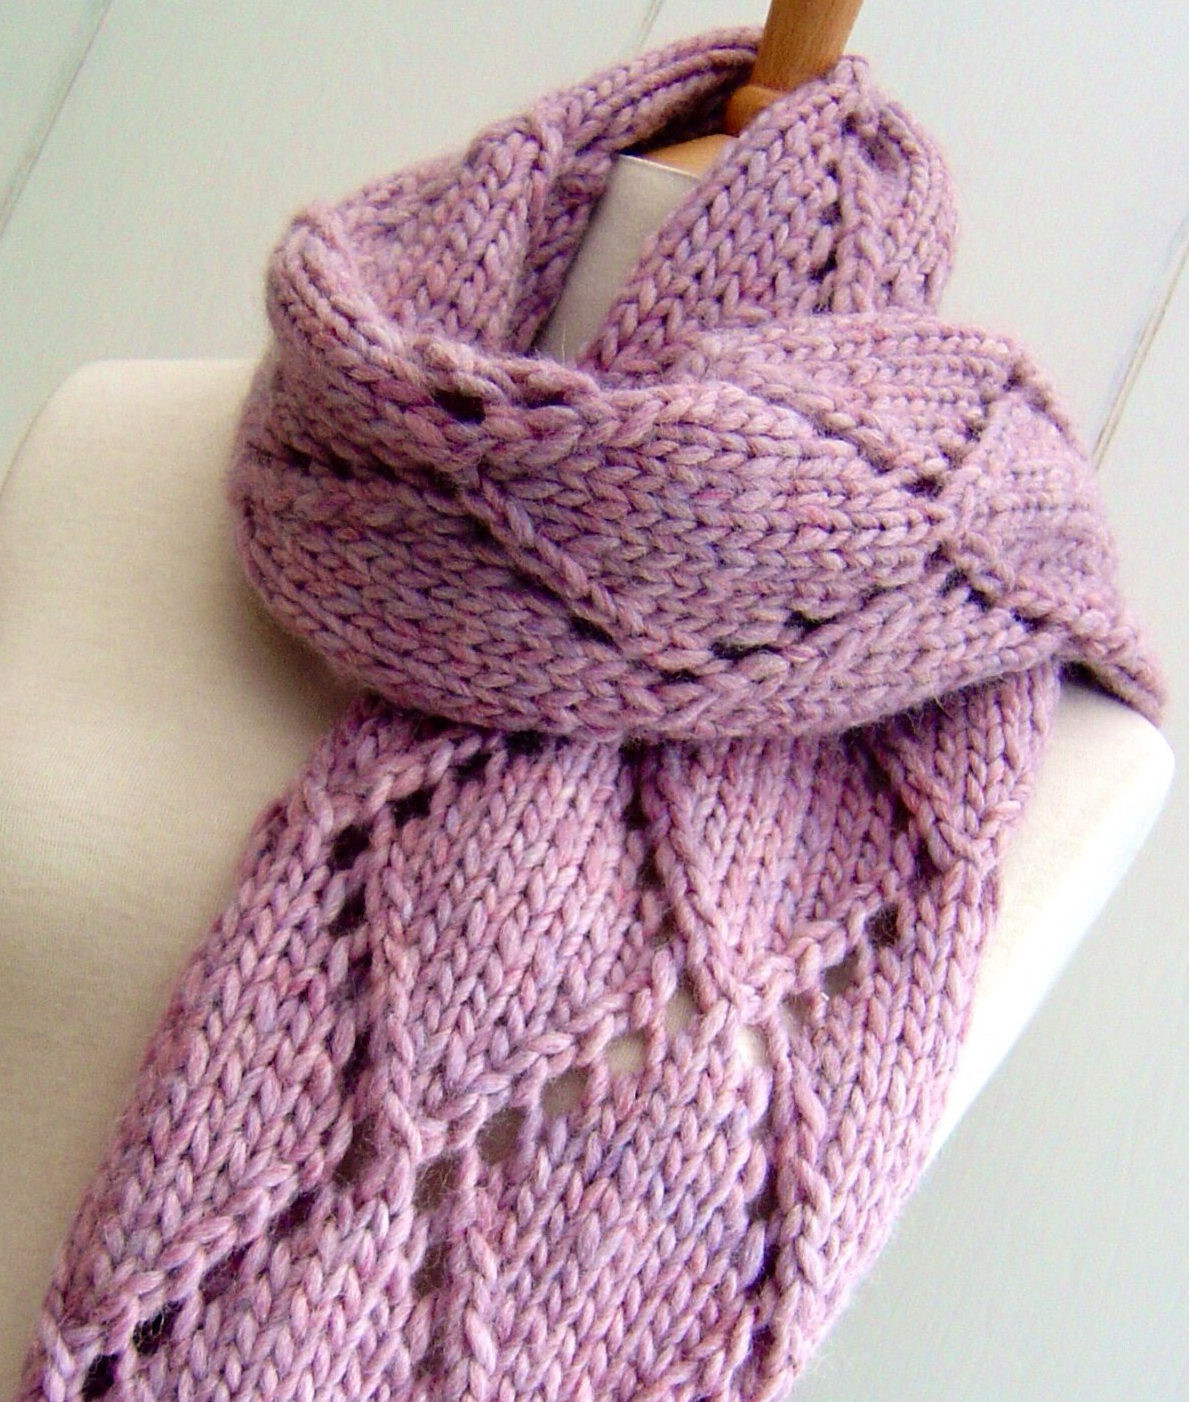 Scarf Patterns New Easy Scarf Knitting Patterns Of Great 42 Images Scarf Patterns